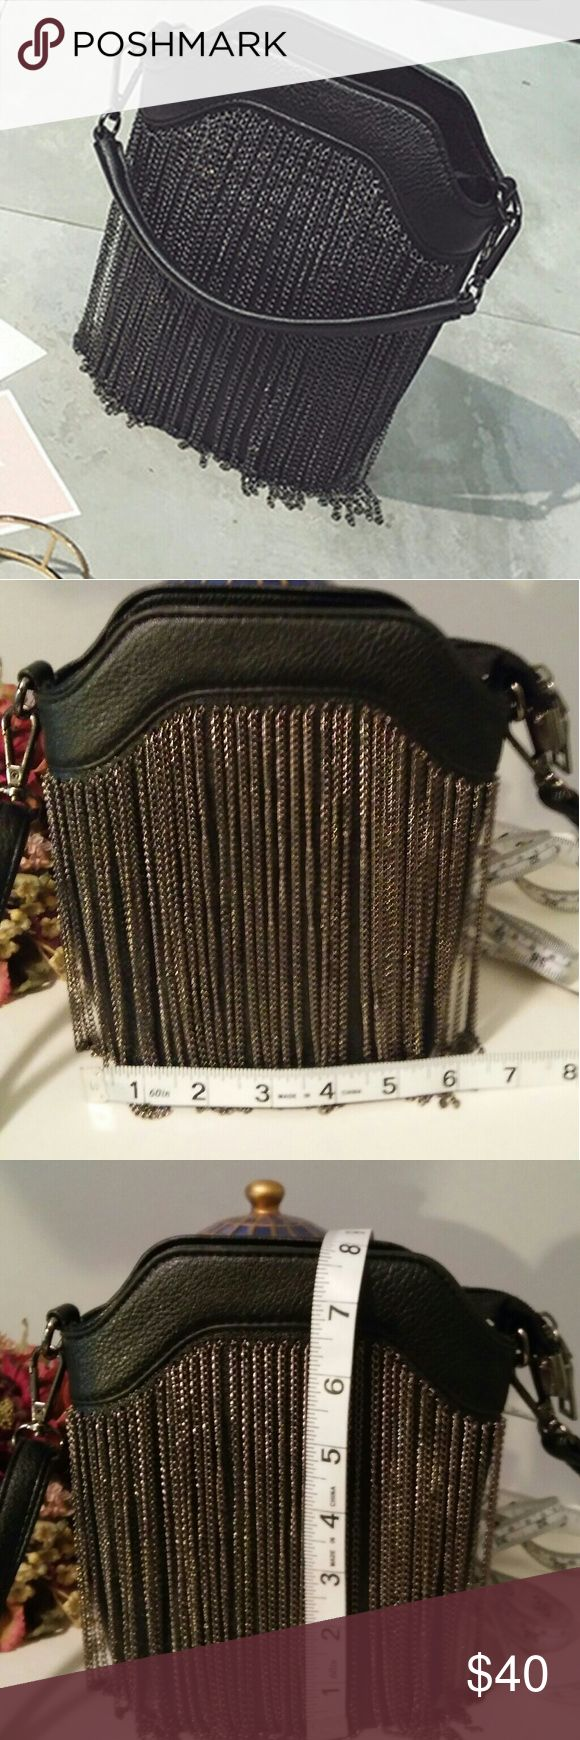 🔥 2×HP 🔥THE MELISSA SMALL BUCKET CHAIN BAG THE MELISSA SMALL BUCKET CHAIN BAG STRUCTURED PU LEATHER SOLID BACK HEMATITE CHAIN DETAIL IN FRONT COMES WITH A HAND STRAP AND A CROSSBODY STRAP WITH A DROP OF A LITTLE OVER 21 INCHES A LITTLE OVER 6 INCHES LONG BY 7 INCHES HIGH GREAT WHEN YOU WANT TO GIVE THAT OUTFIT A LITTLE EDGE PRICE FIRM UNLESS BUNDLED SORRY NO TRADES Bags Mini Bags